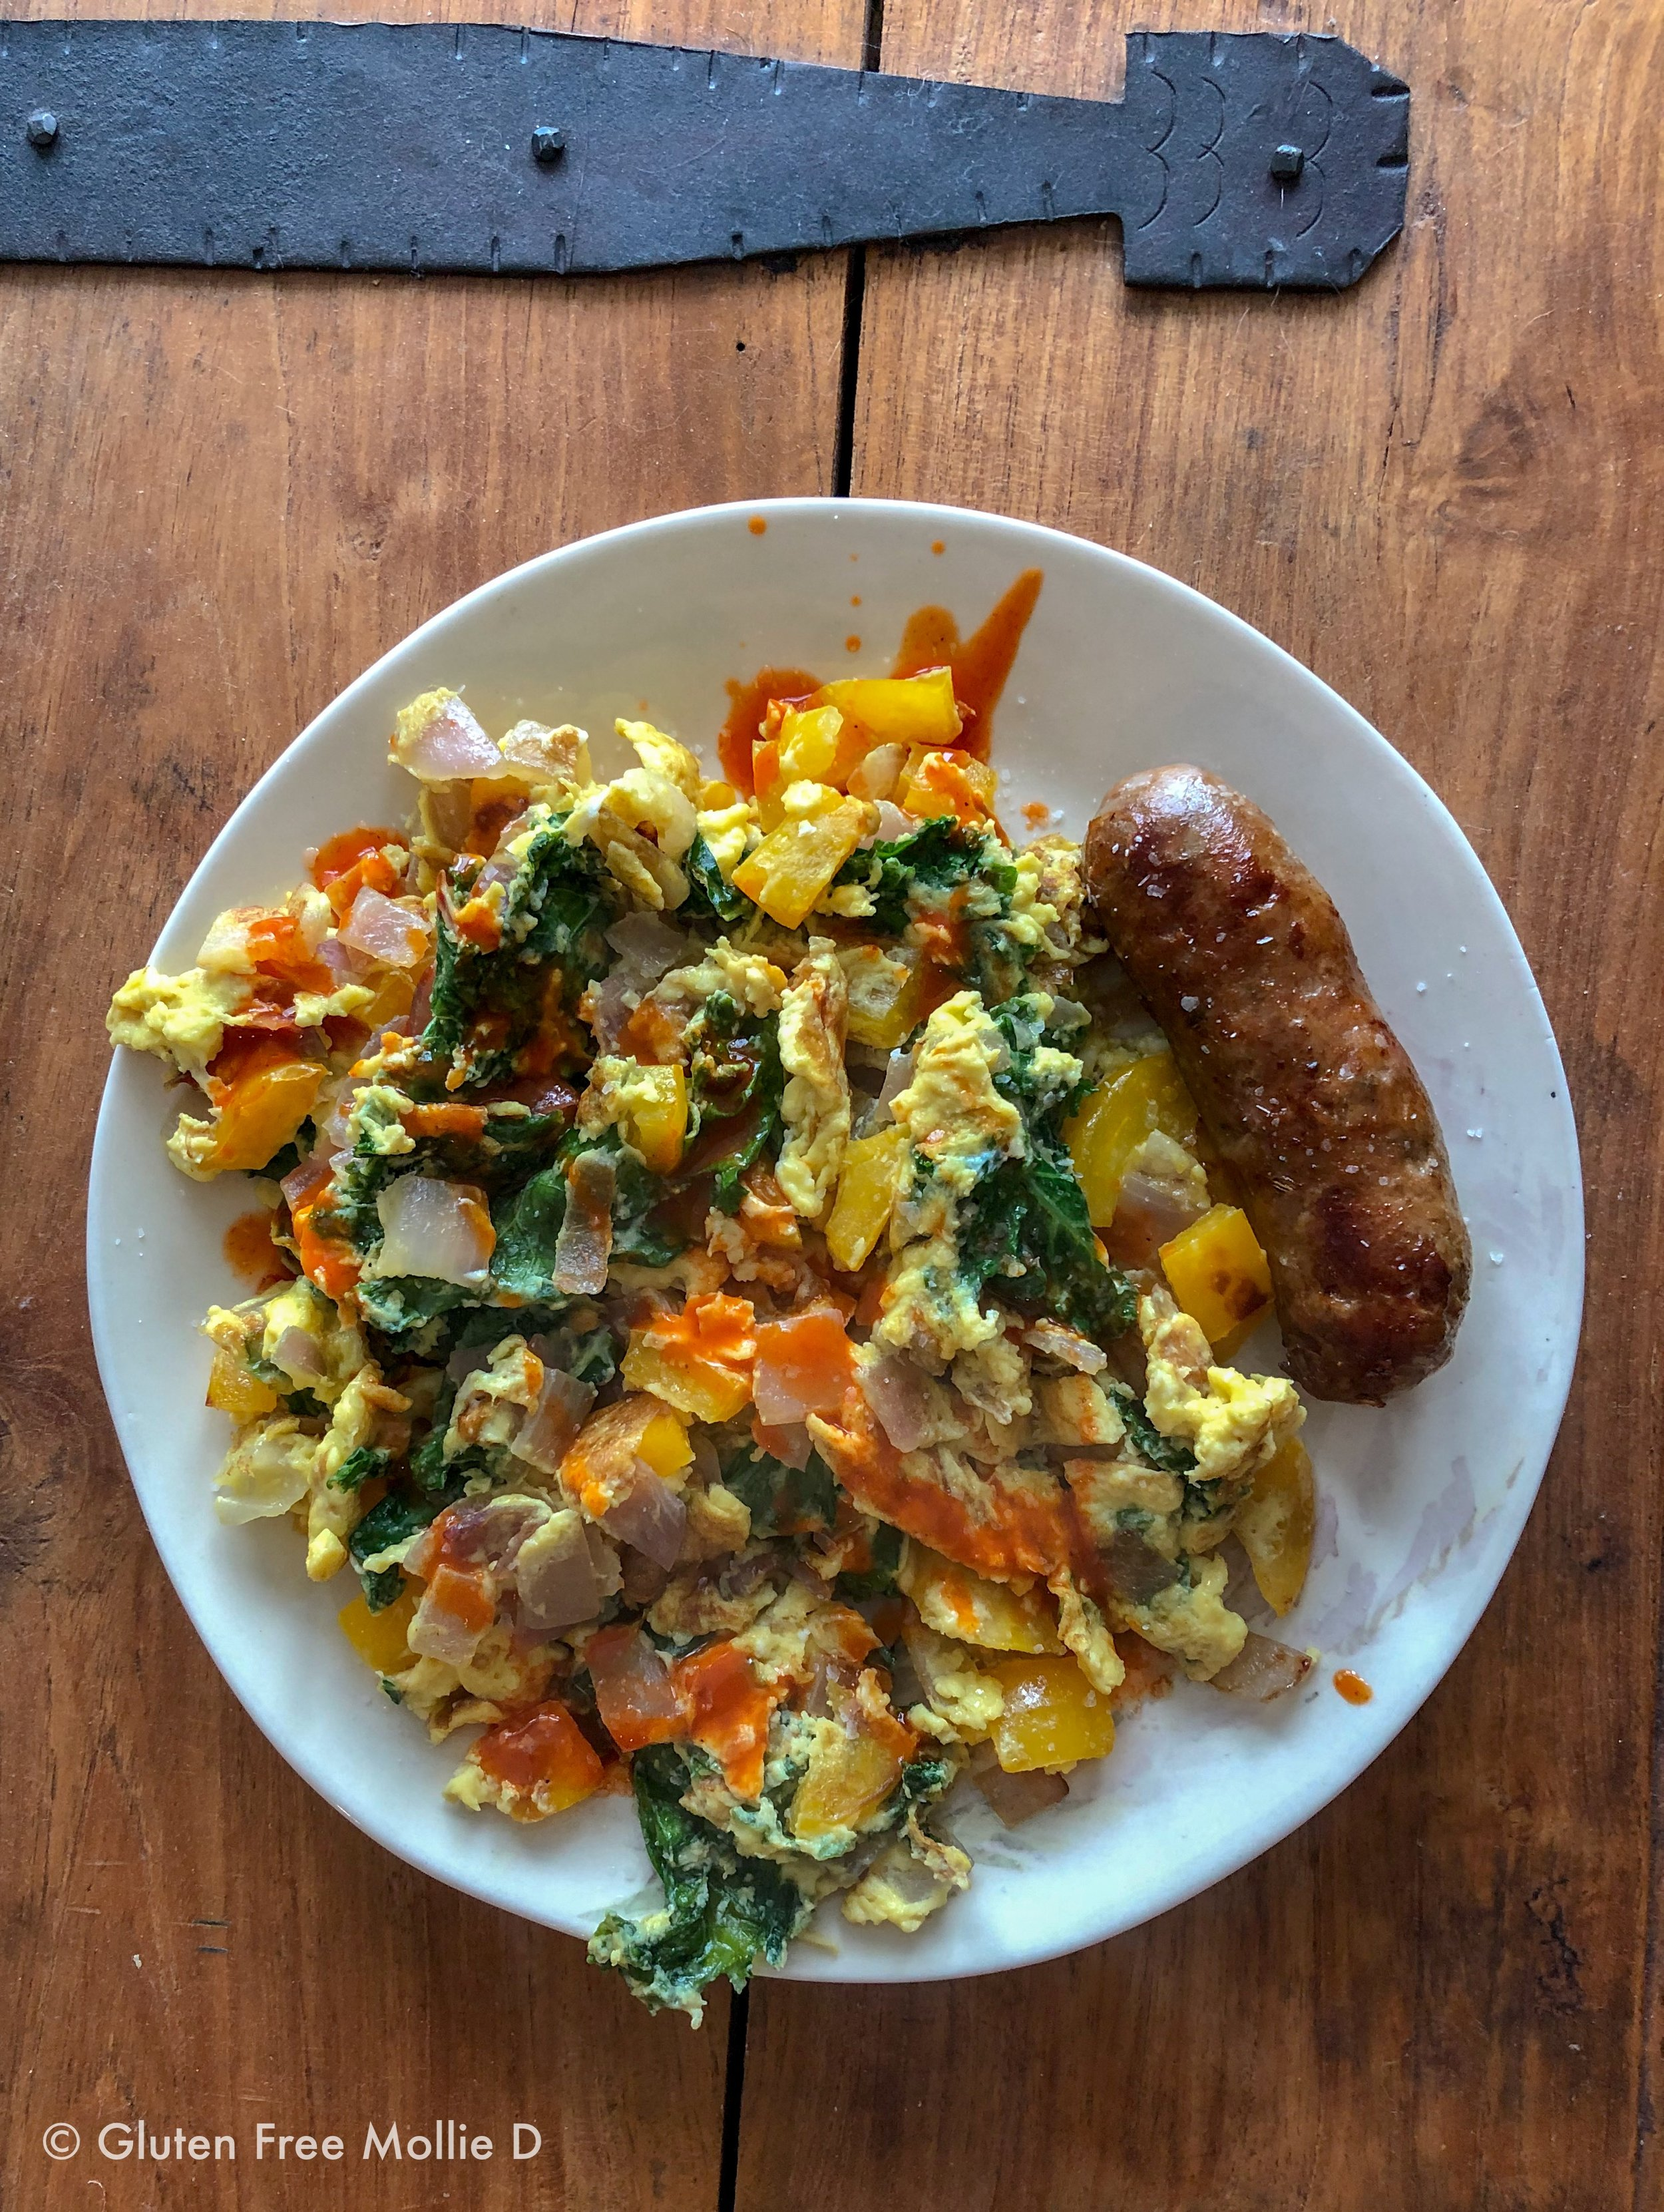 Saturday morning: scrambled eggs with veggies, topped with hot sauce. Side of sausage.